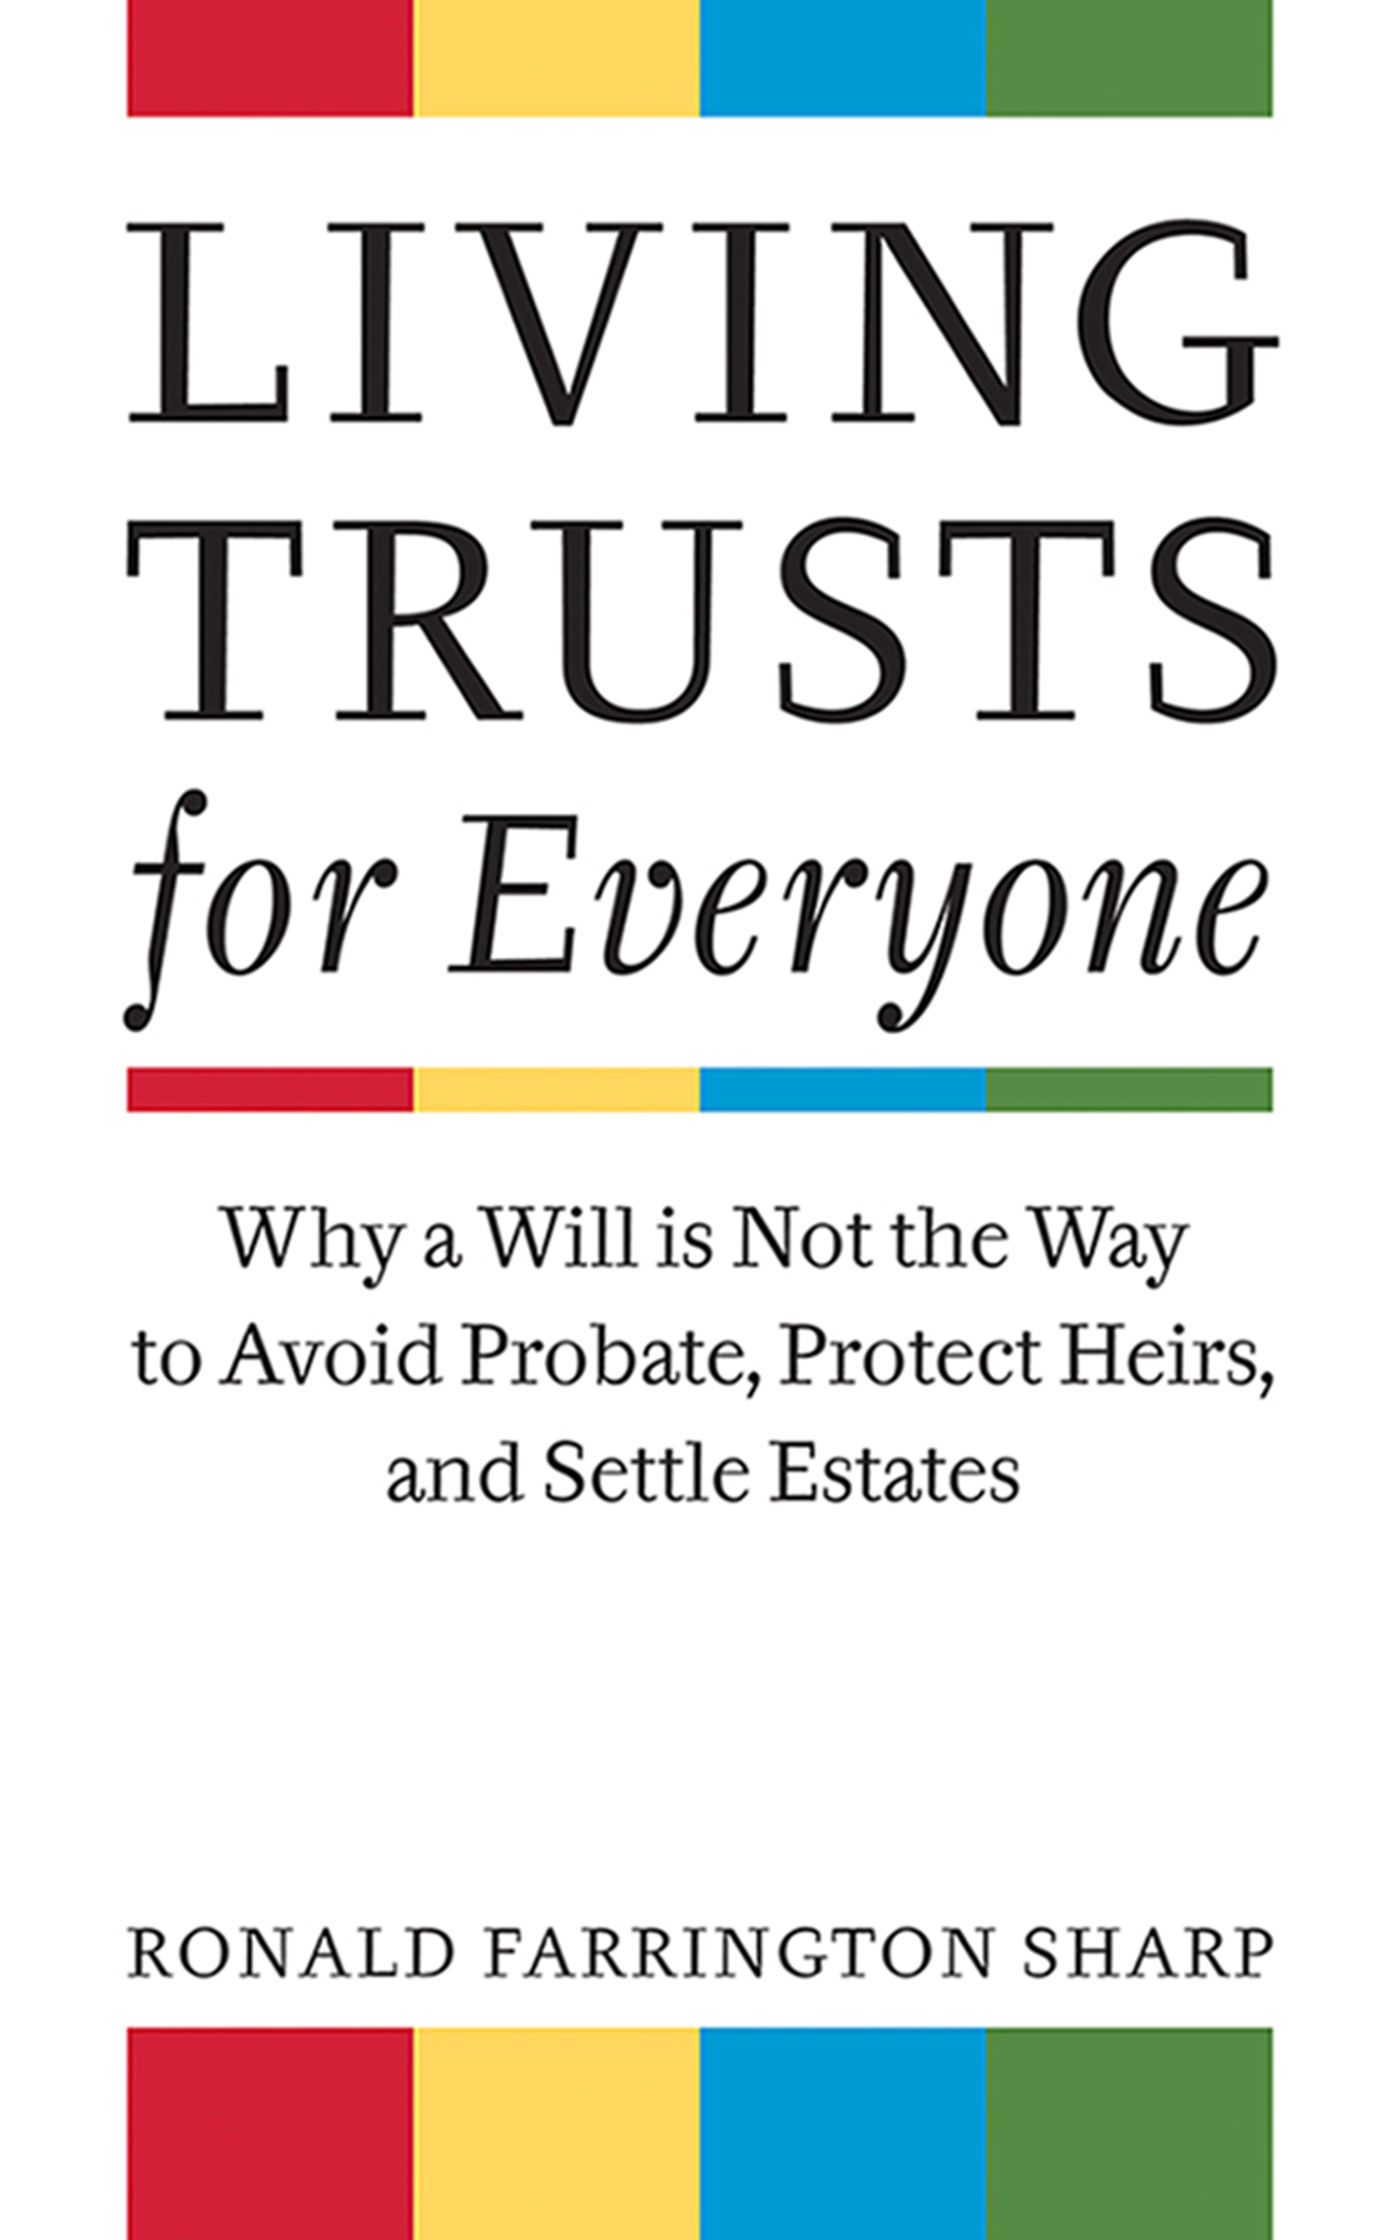 Living Trusts for Everyone Why a Will is Not the Way to Avoid Probate, Protect Heirs, and Settle Estates